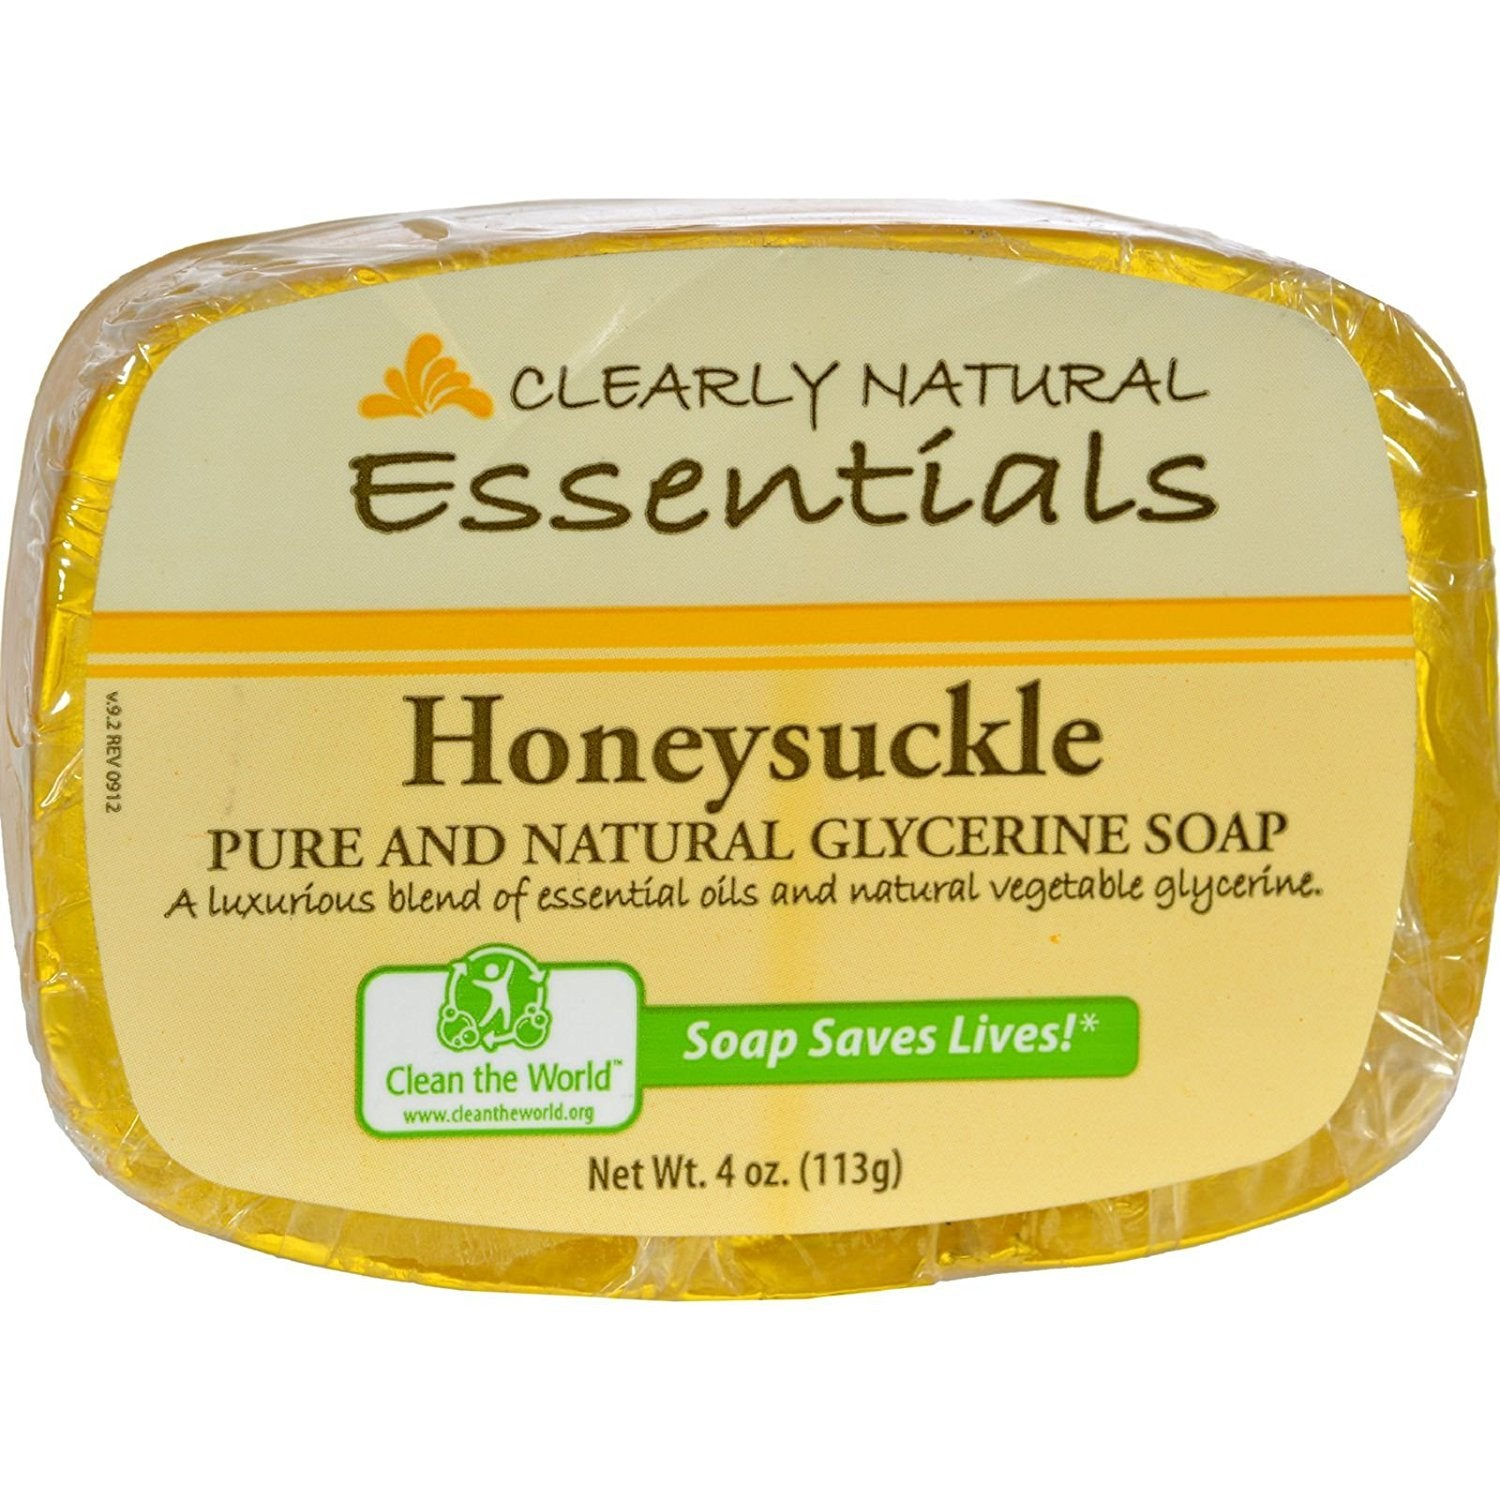 Clearly Natural-Honeysuckle Glycerine Bar Soap 12 PCK- 4 oz. EACH